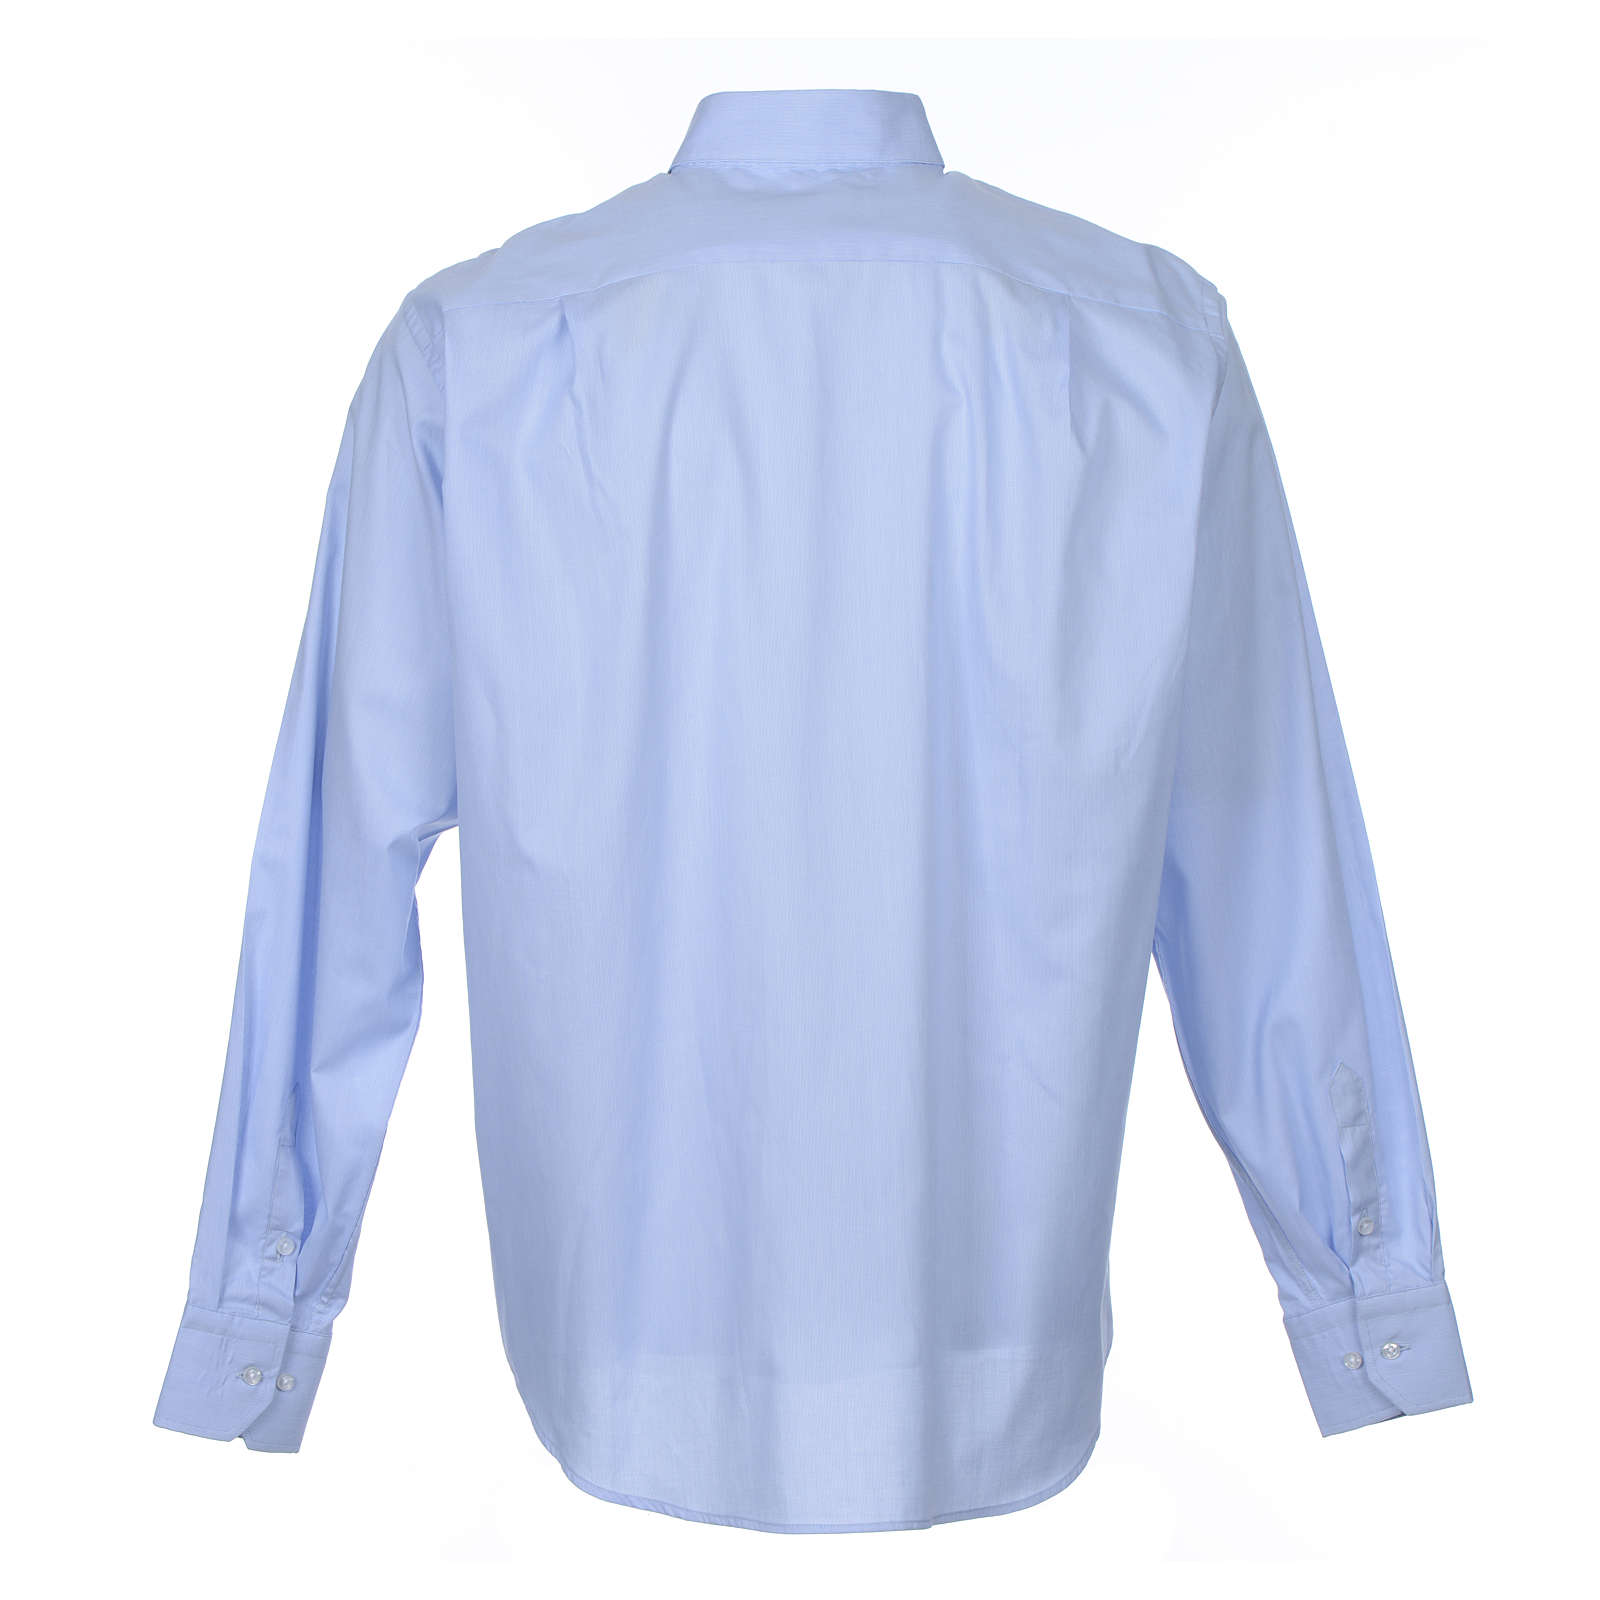 Clergy shirt long sleeves Prestige Line mixed cotton Light Blue 4